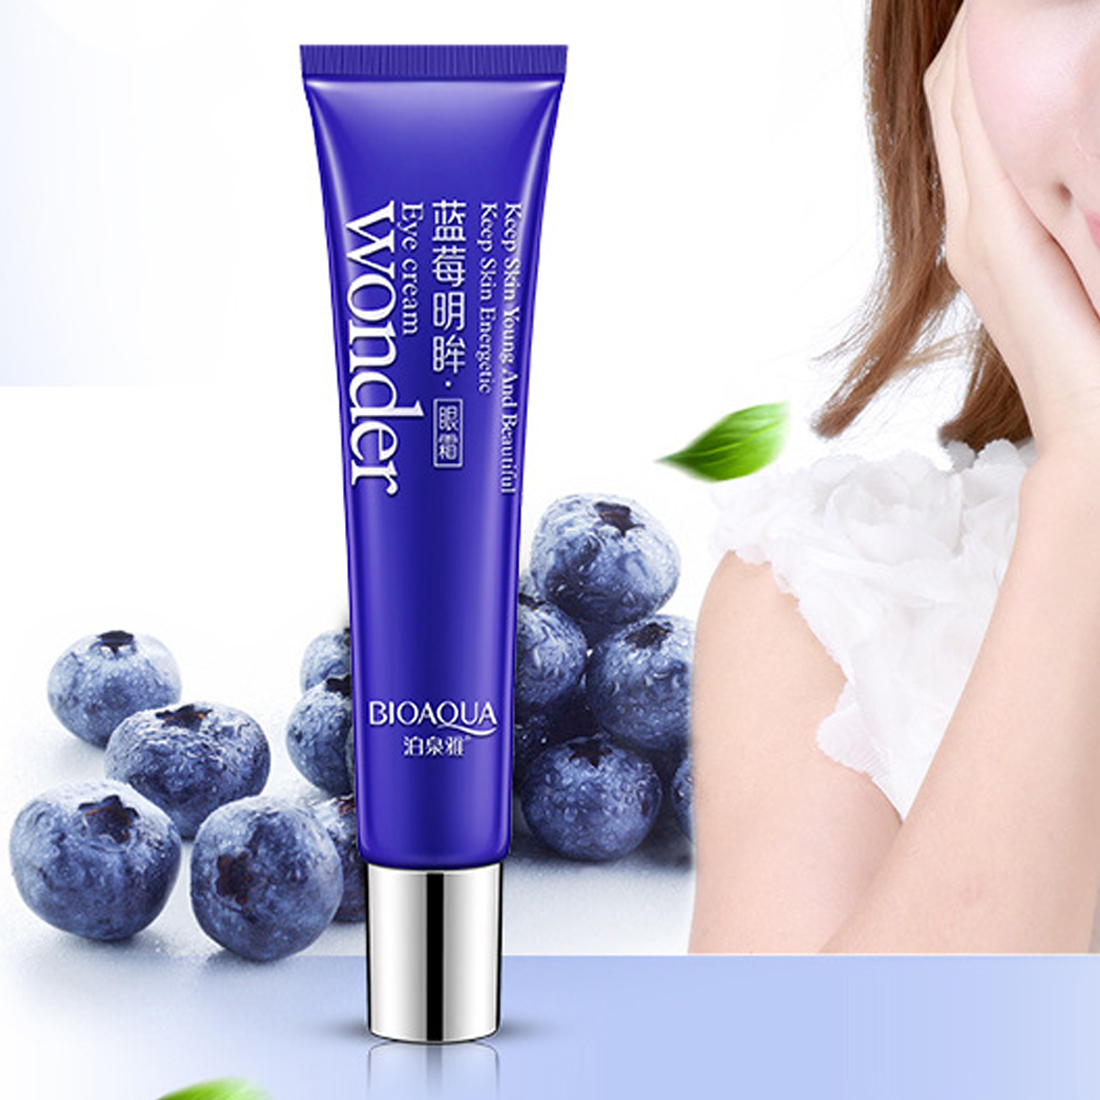 Hot sale eyes creams anti puffiness dark circles under eye remover anti wrinkle anti age skin care blueberry image